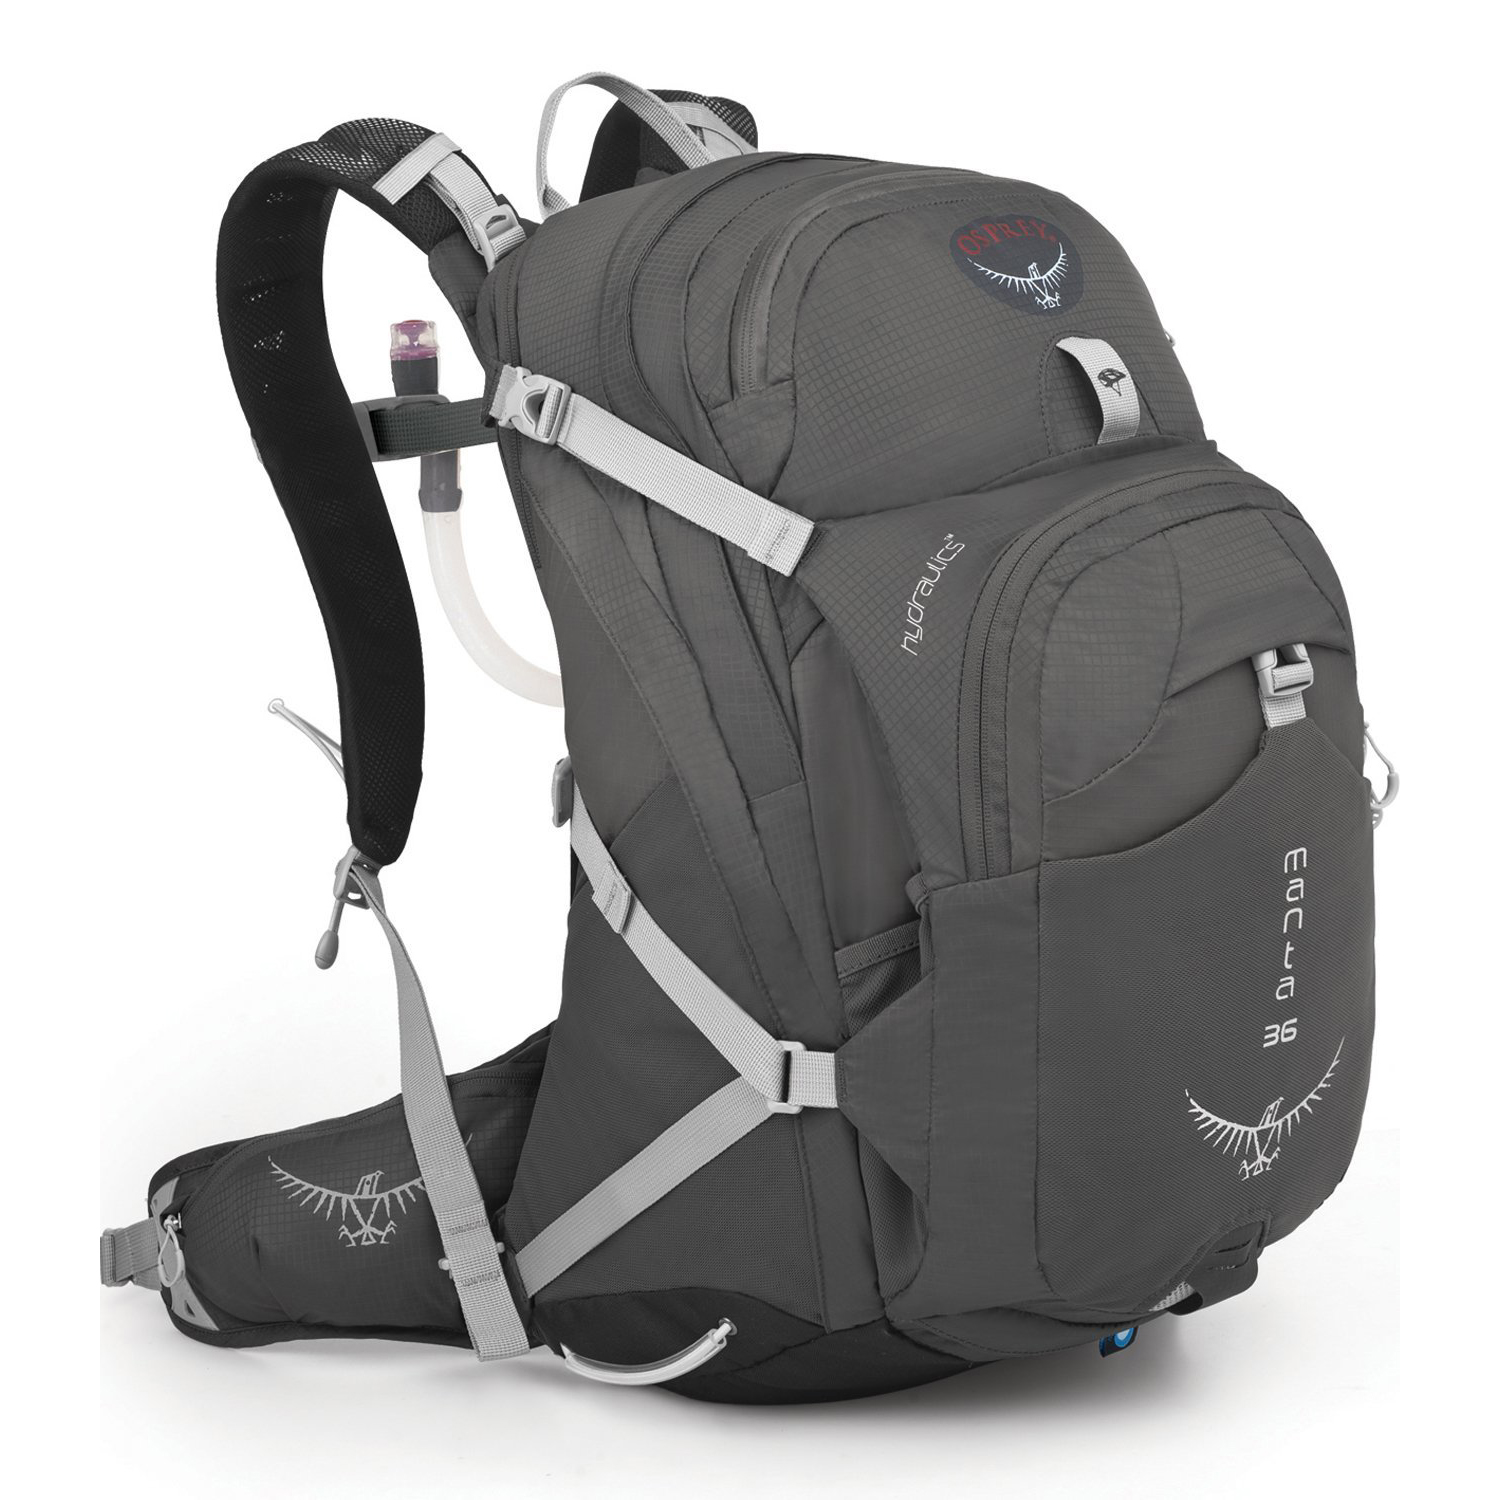 osprey single guys Geoff unger reviews osprey's rev 12 backpack  one day i did an 8-pitch rock  climb with a 2-hour approach and wore the pack the whole.